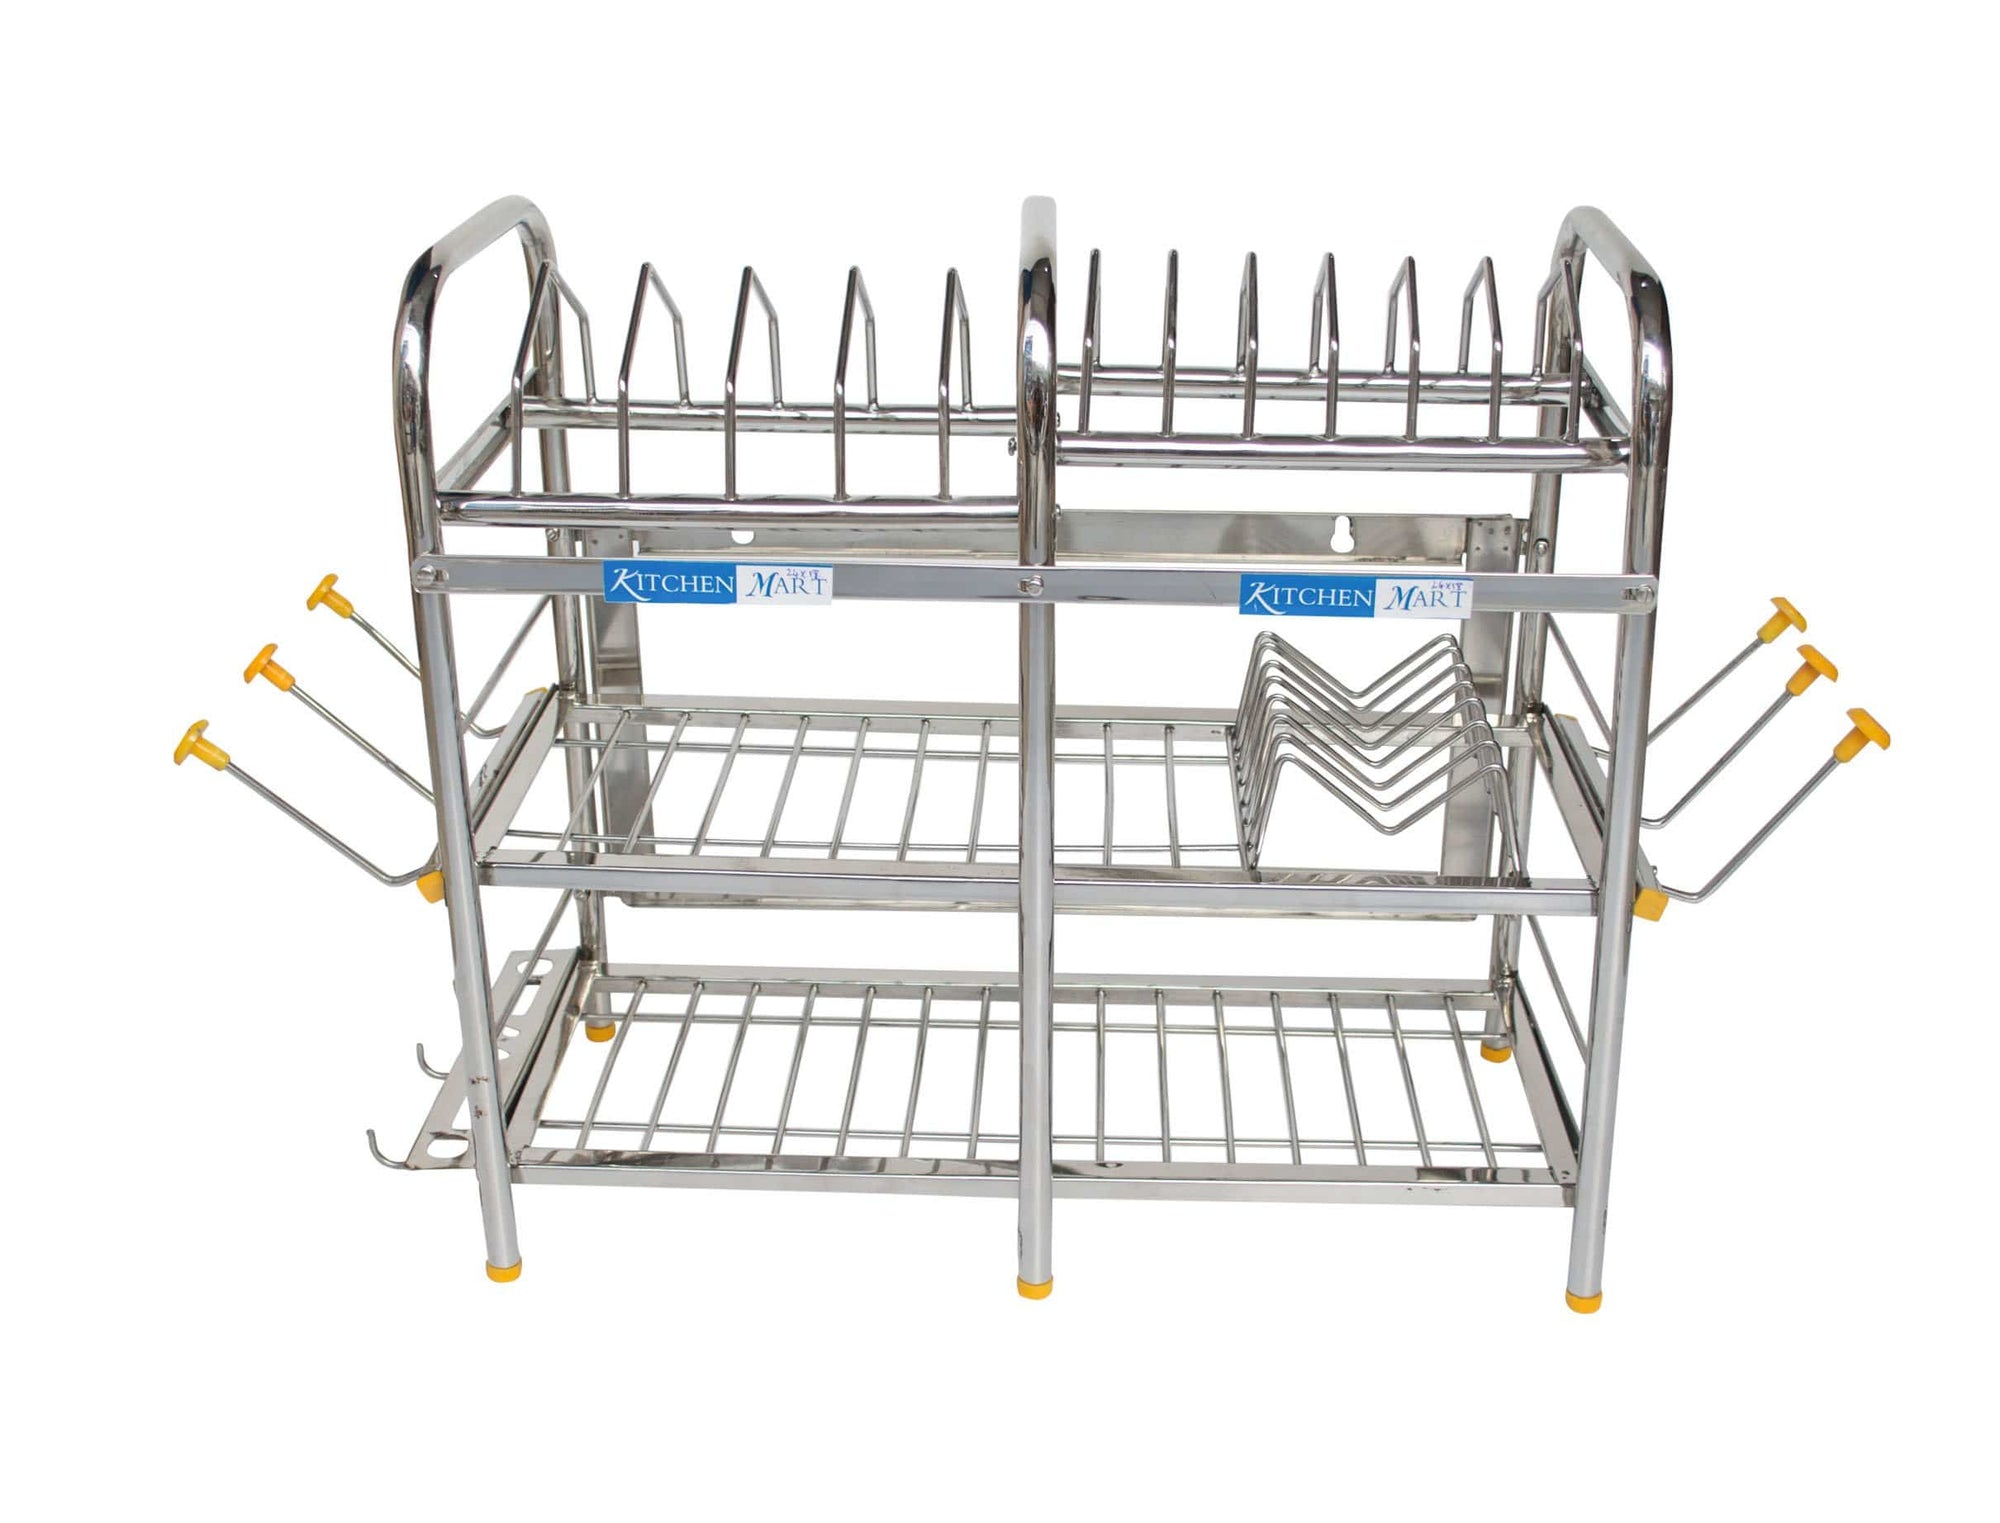 Kitchen Mart Stainless Steel Kitchen Rack (18 x 21 inch) - KITCHEN MART